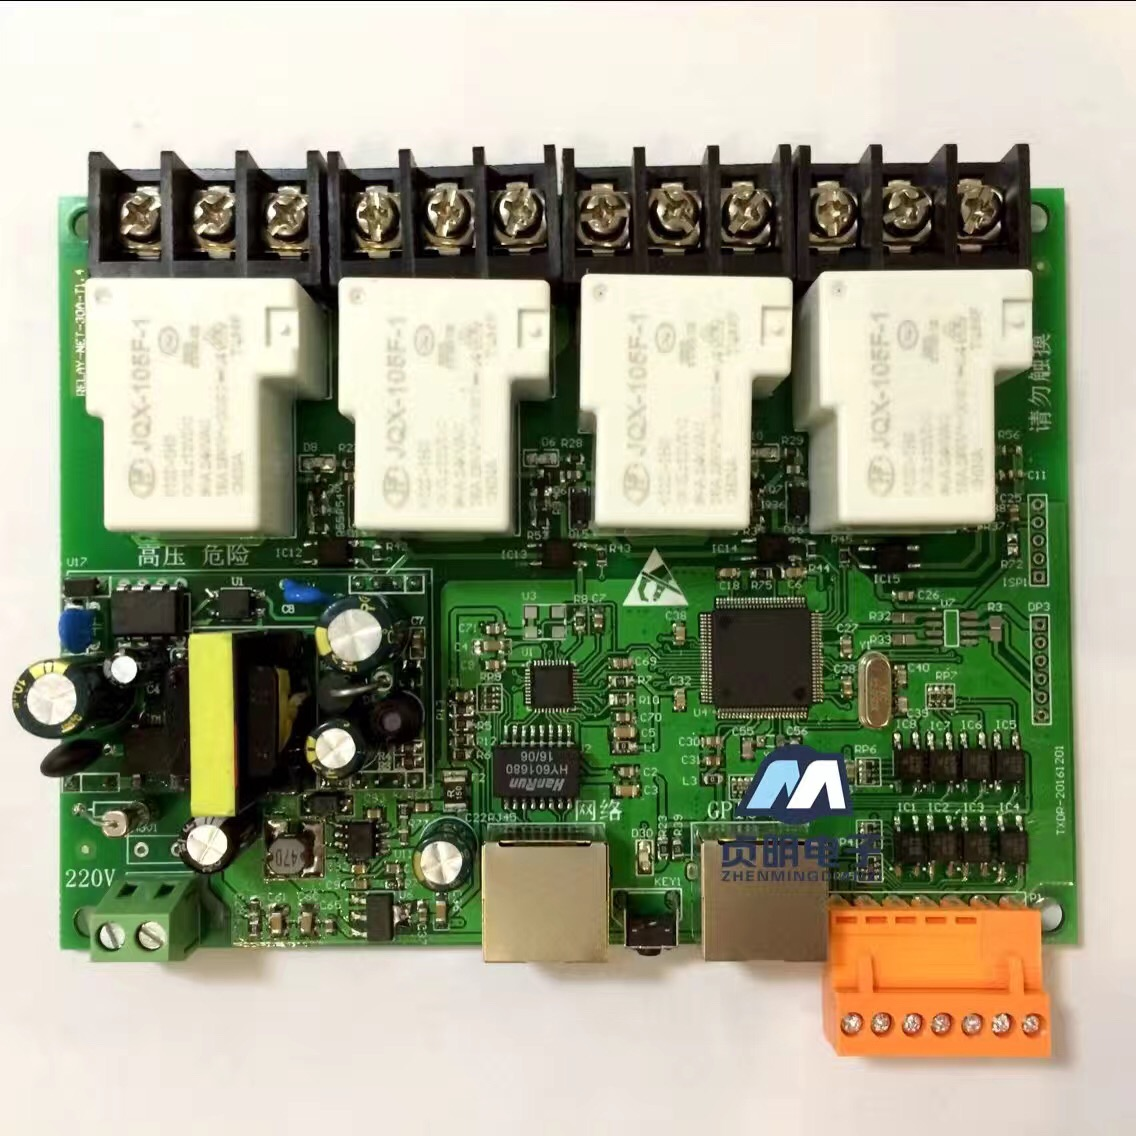 4-channel High-power Network Relay Supports Centralized Control and Remote Control of APP Light Controller4-channel High-power Network Relay Supports Centralized Control and Remote Control of APP Light Controller